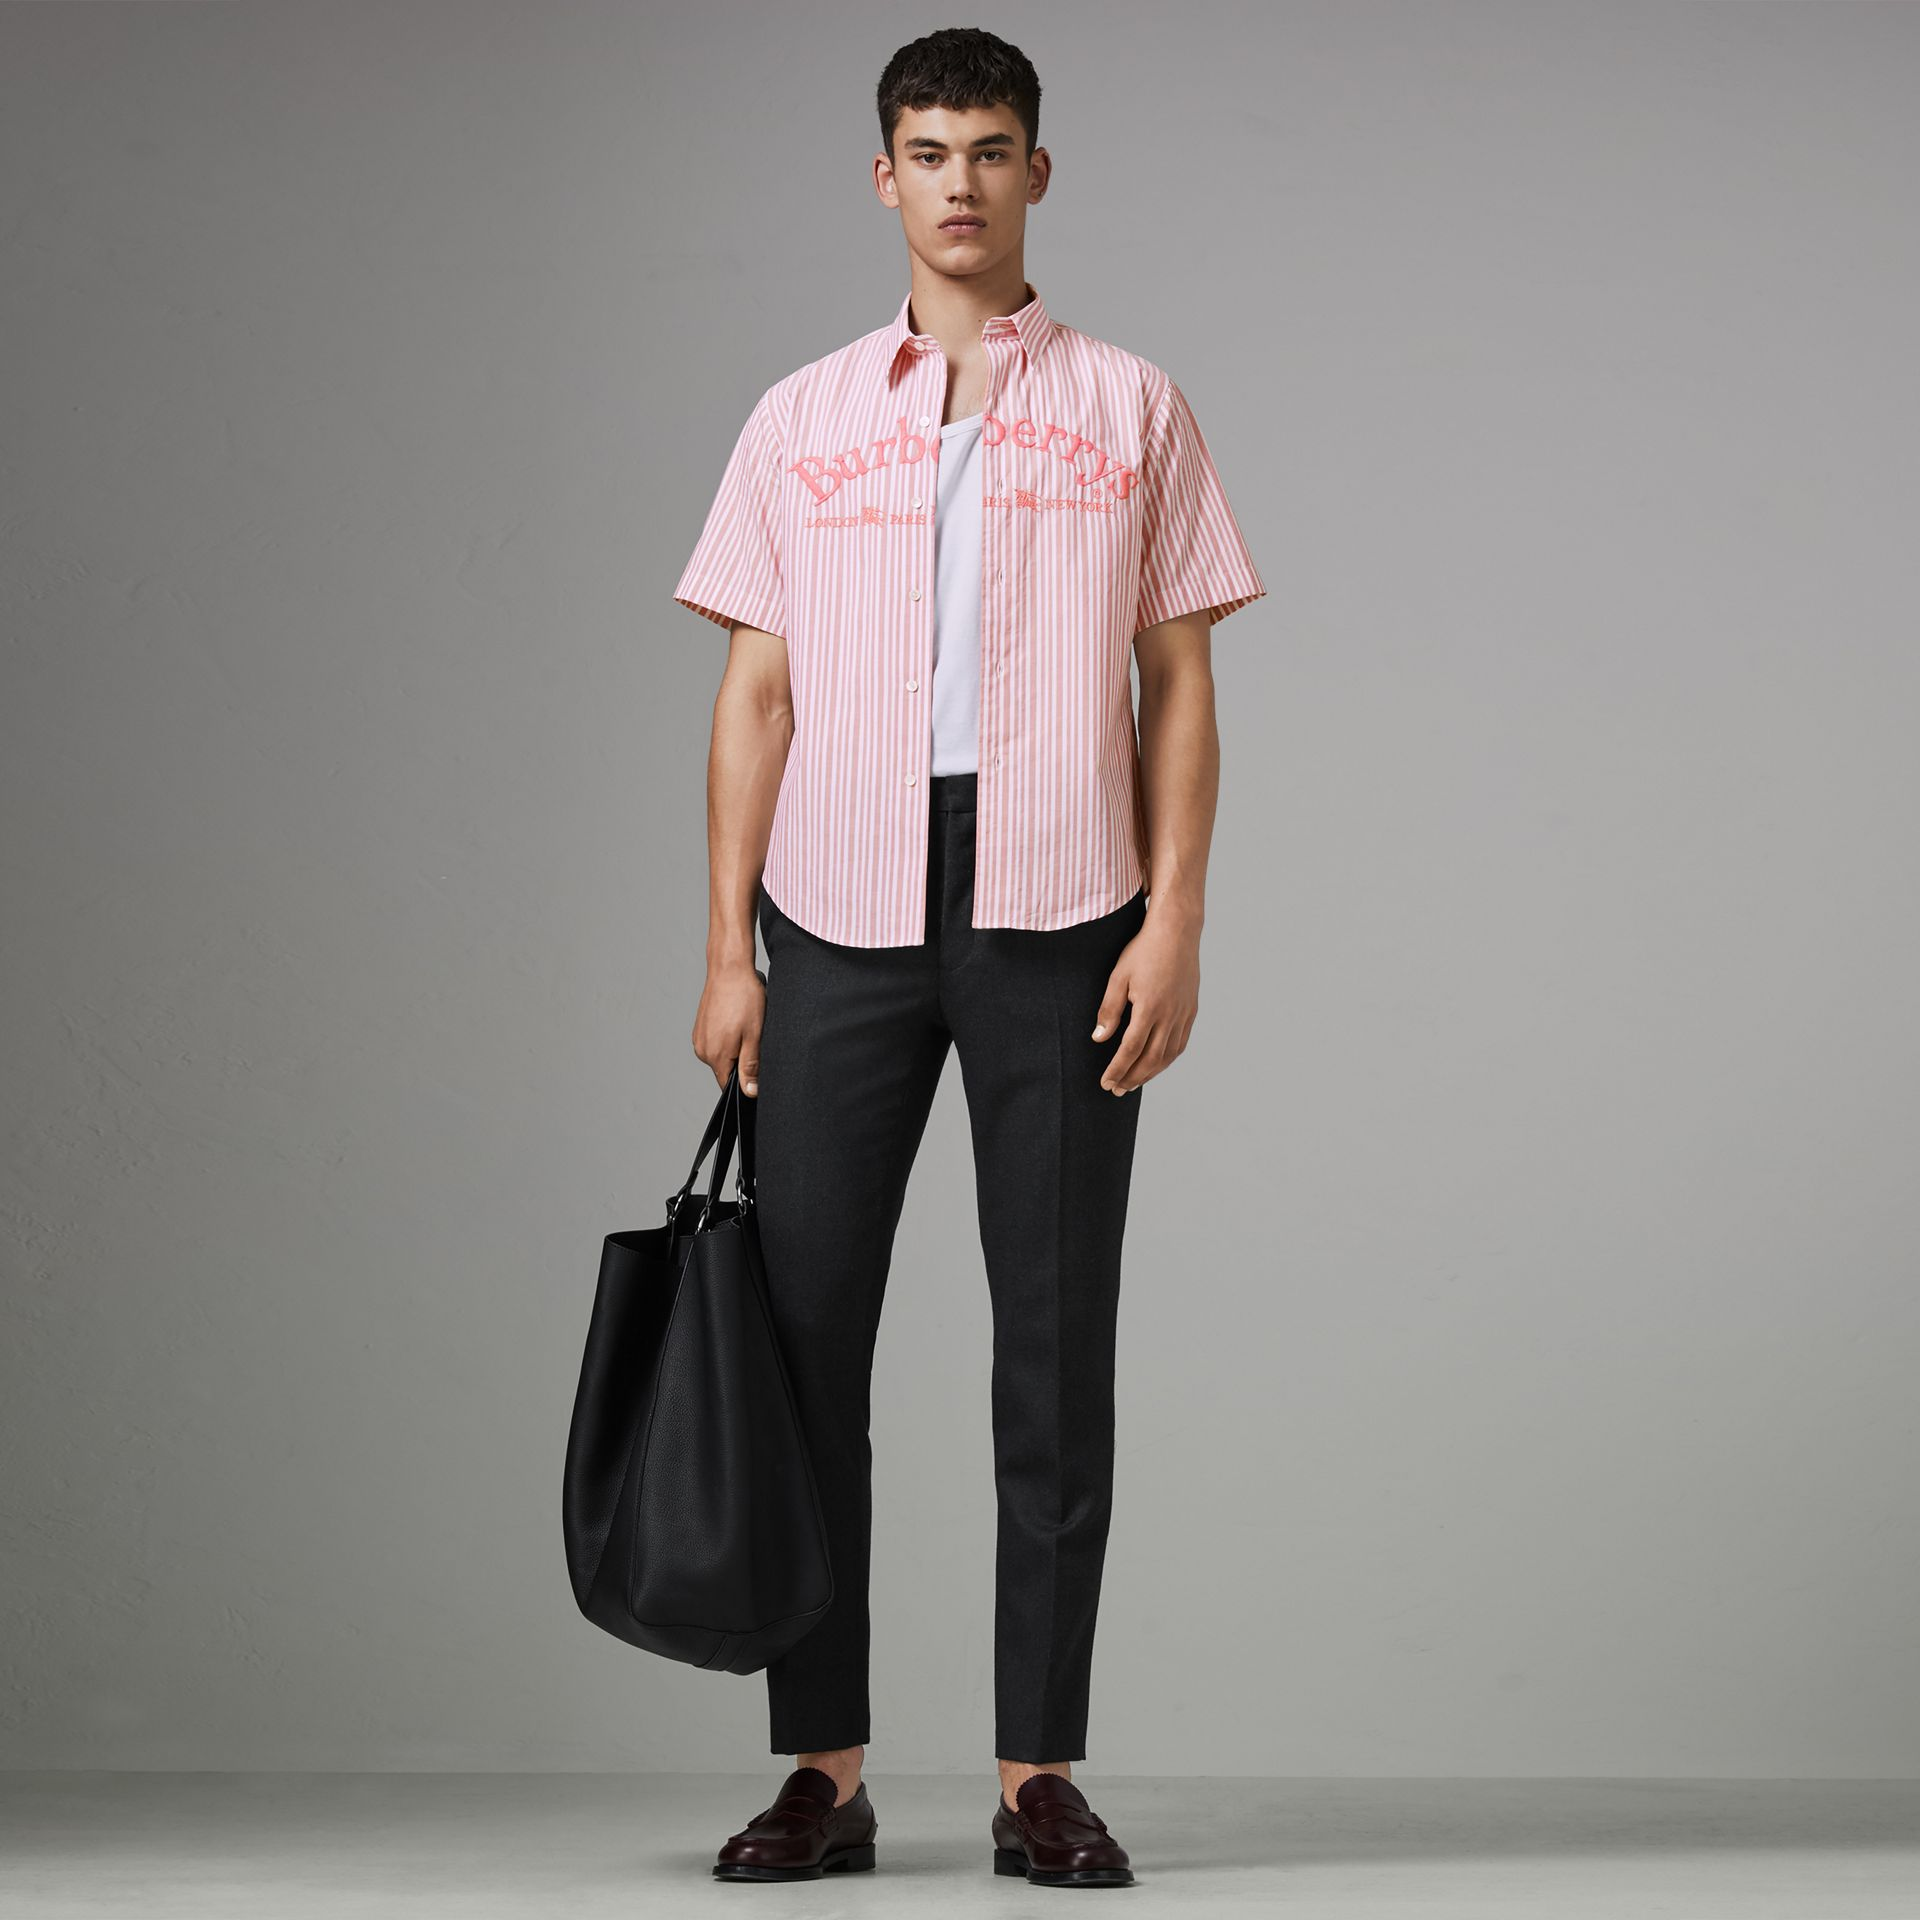 Embroidered Archive Logo Striped Short-sleeve Shirt in Light Pink - Men | Burberry Australia - gallery image 0